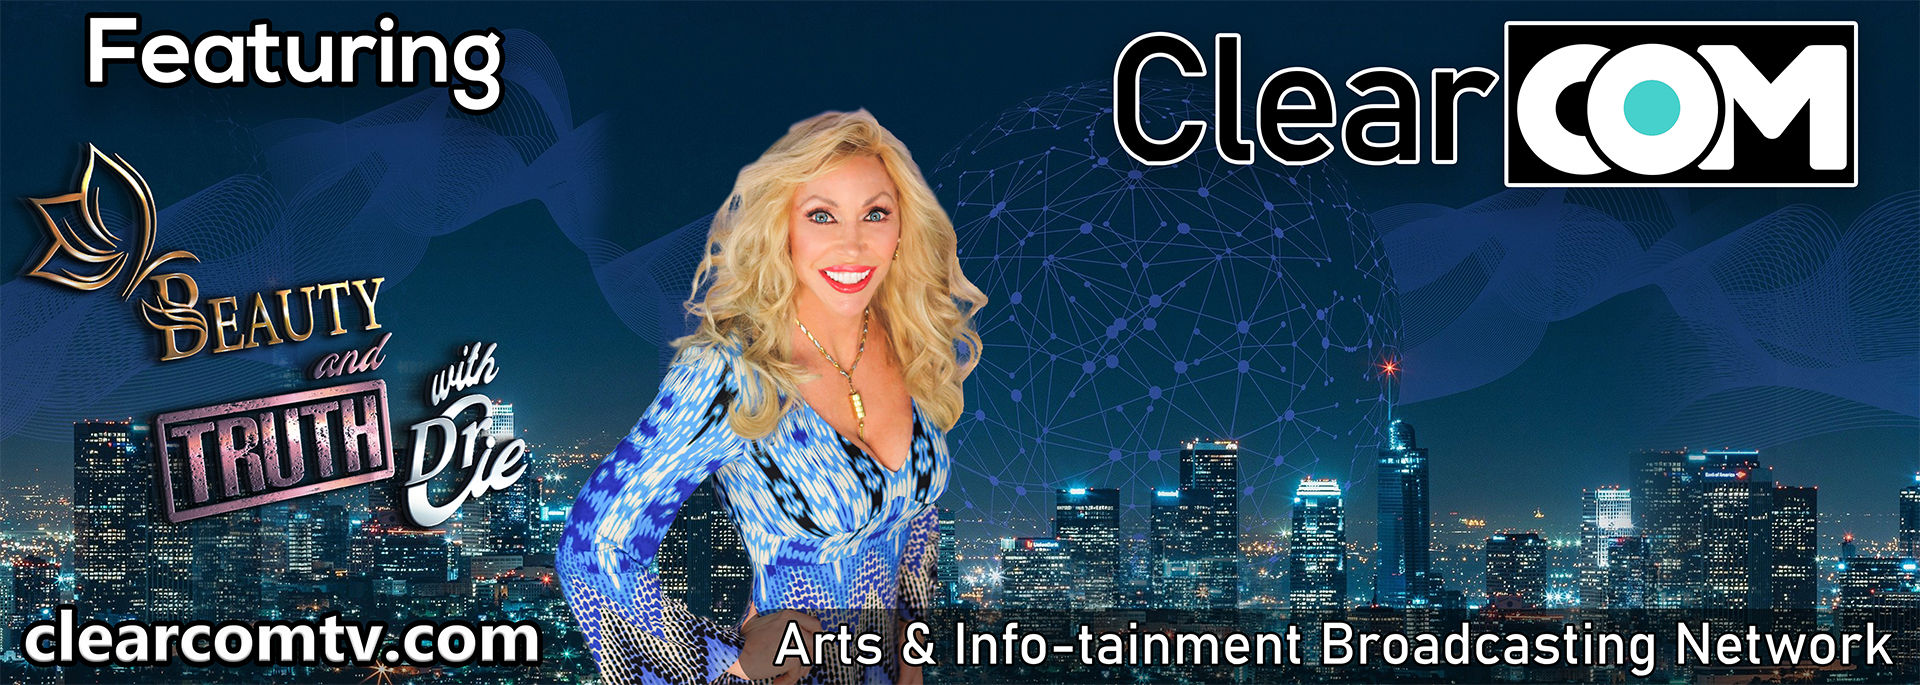 ClearCom channel